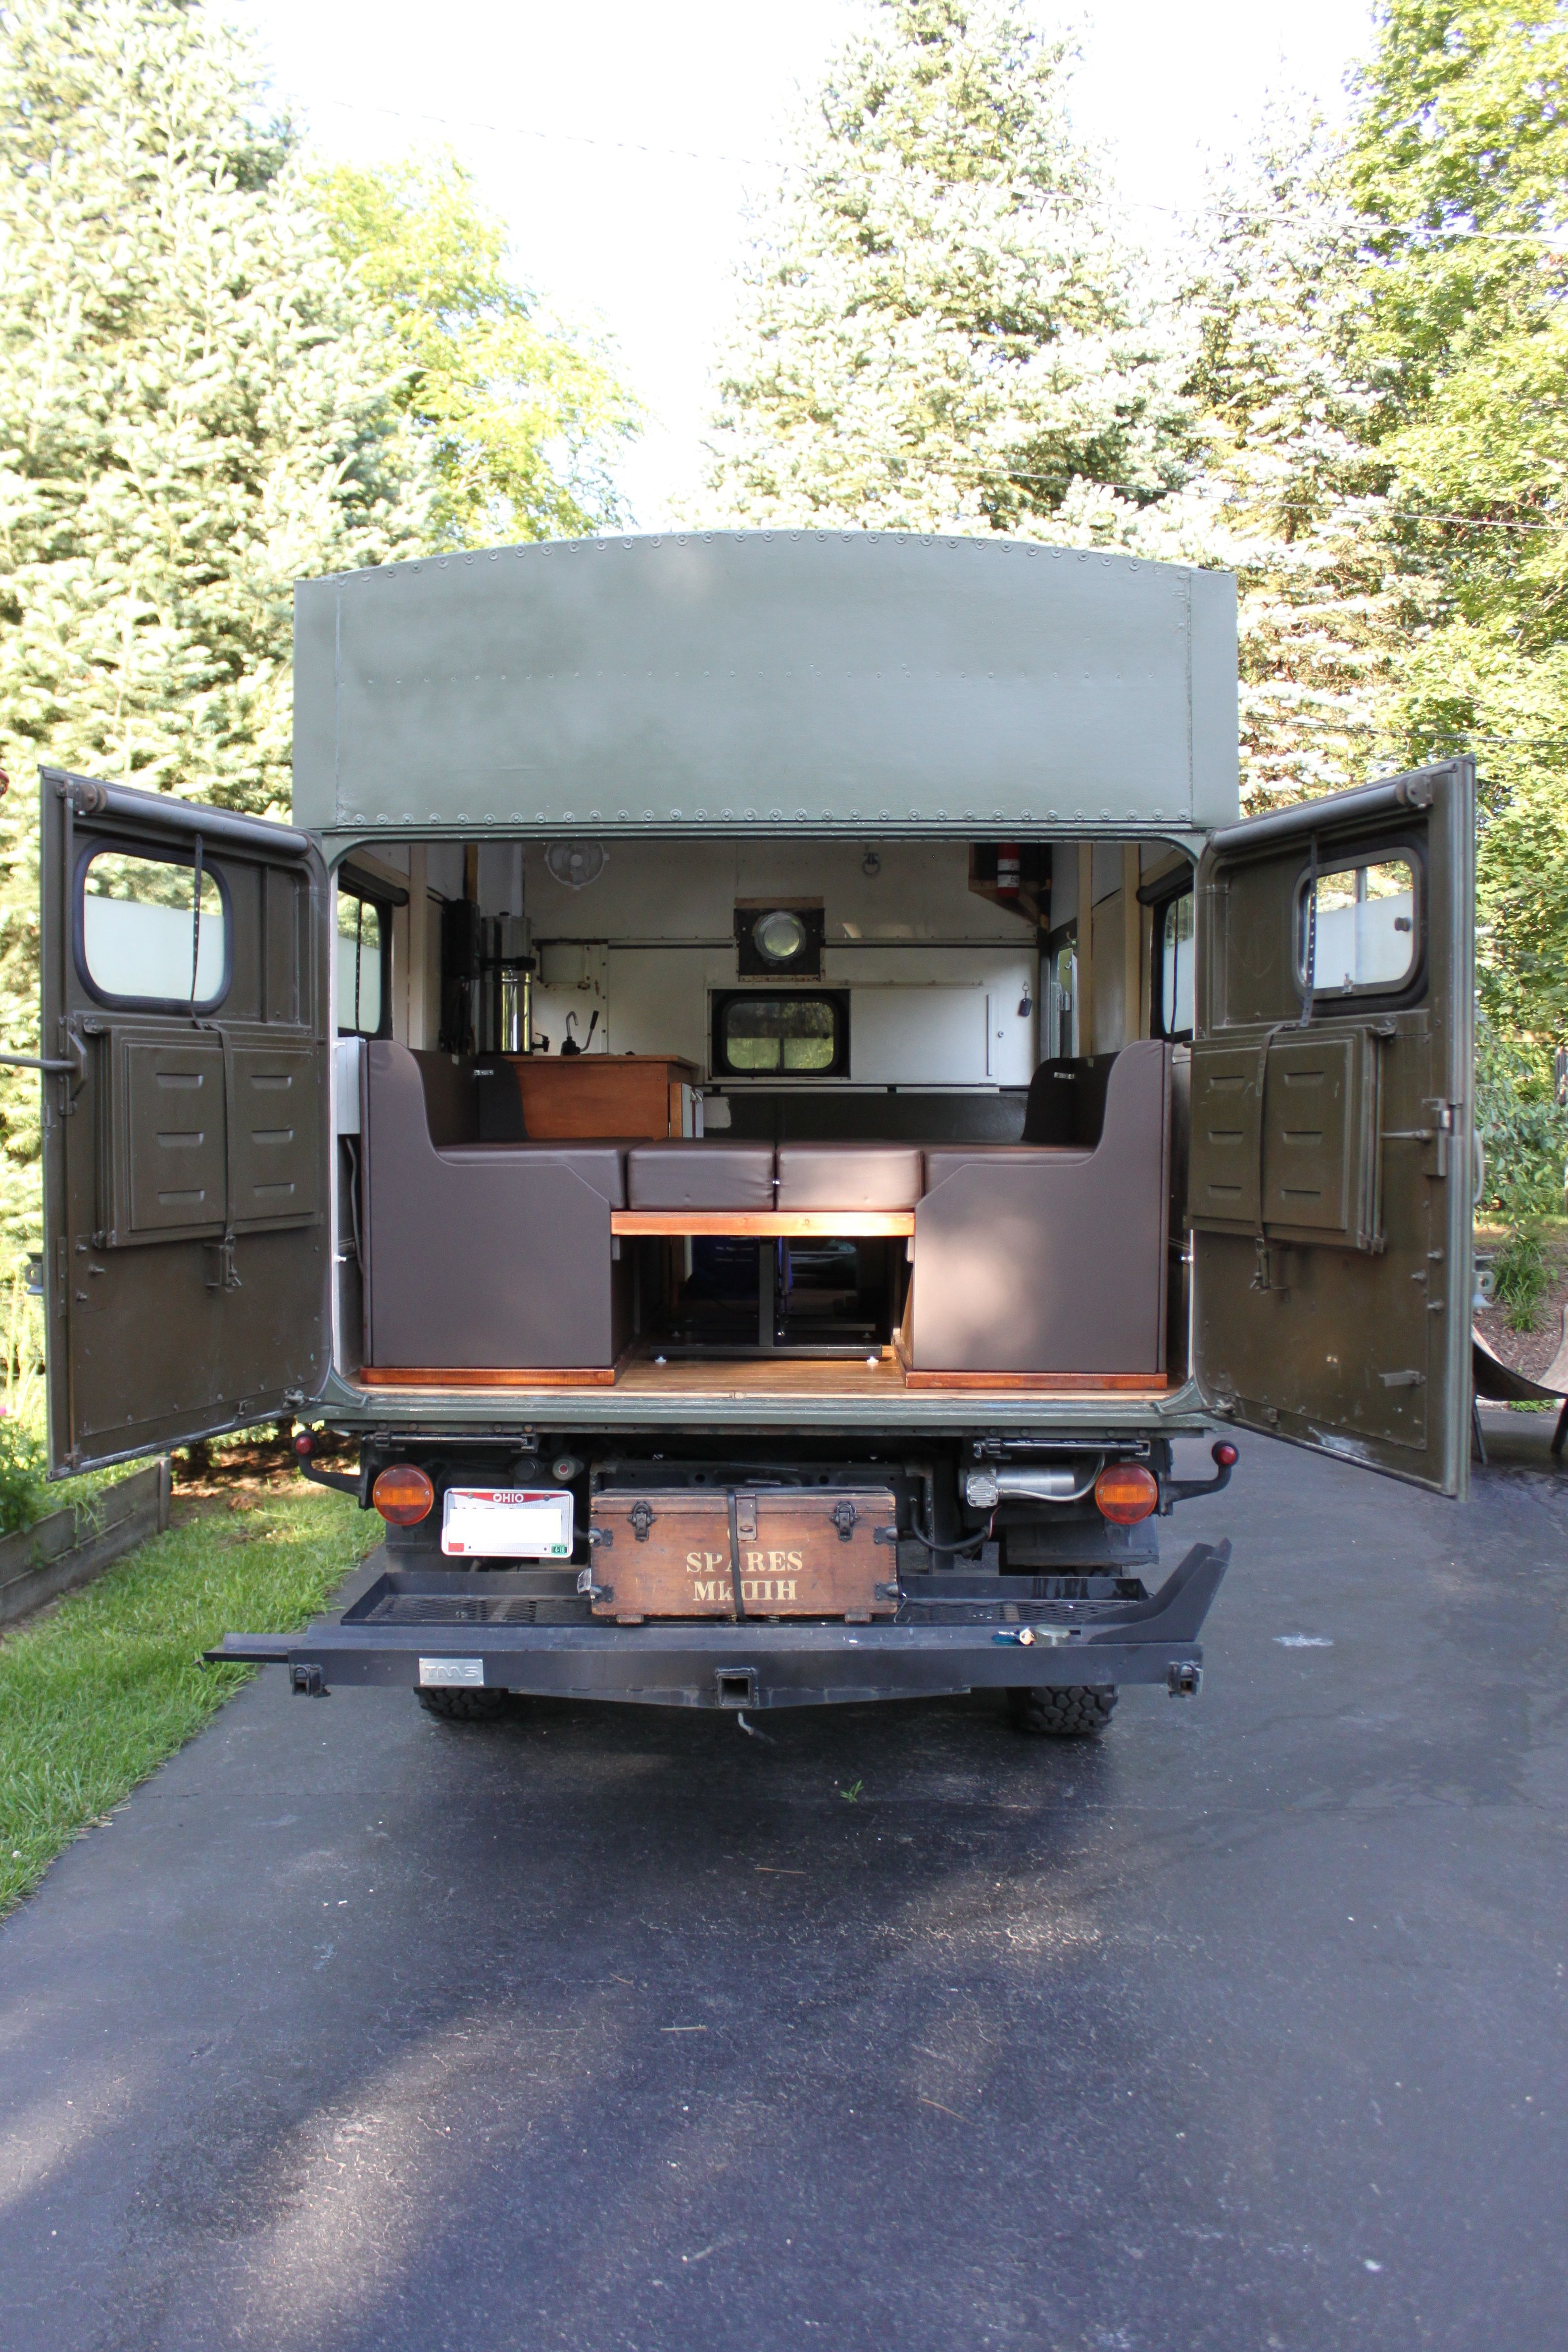 1965 Unimog 404 Camper Interior With Table Down Unimog Small